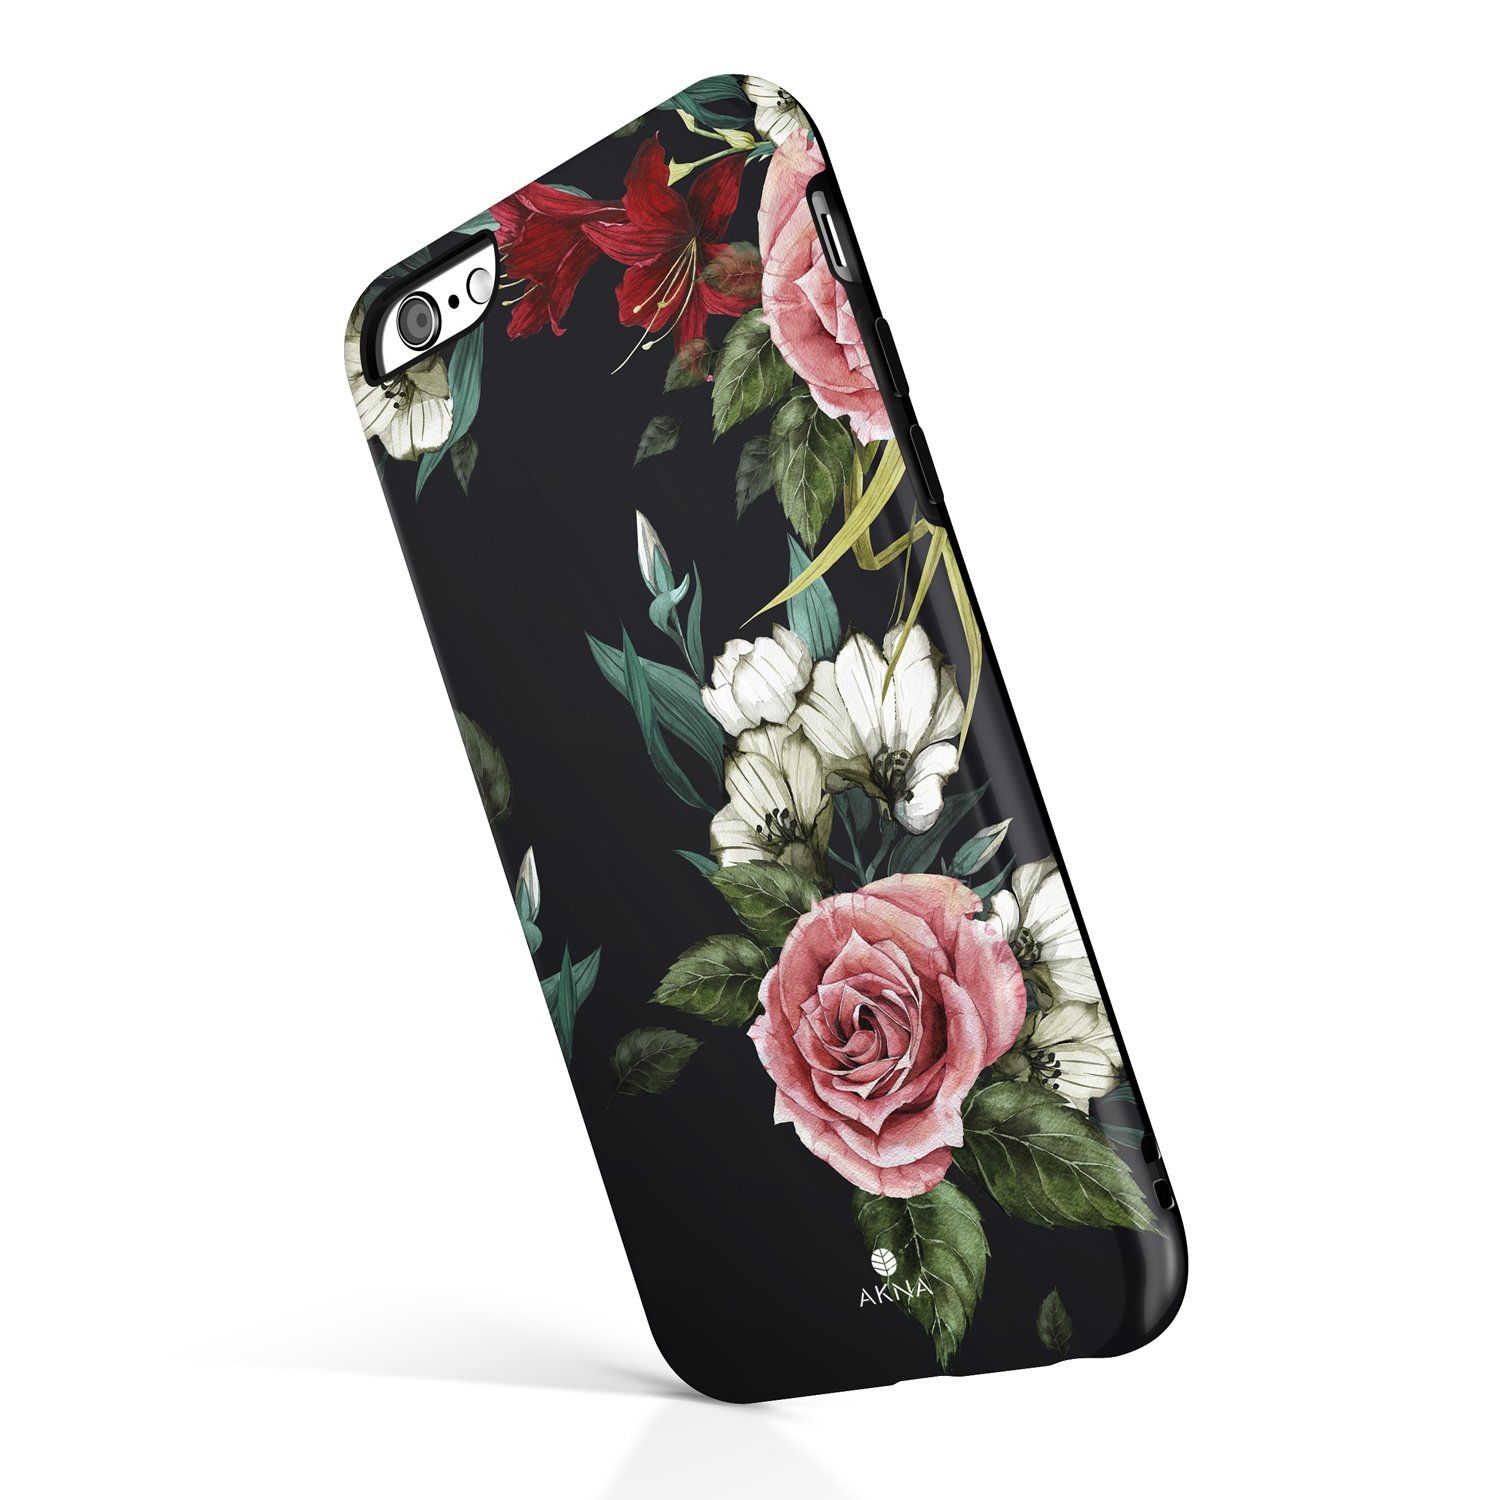 iPhone 6 Plus / 6s Plus case for Girls, Akna Collection Flexible Silicon Cover for Both iPhone 6 Plus & iPhone 6s Plus [Roses and Lilies](752-U.S)